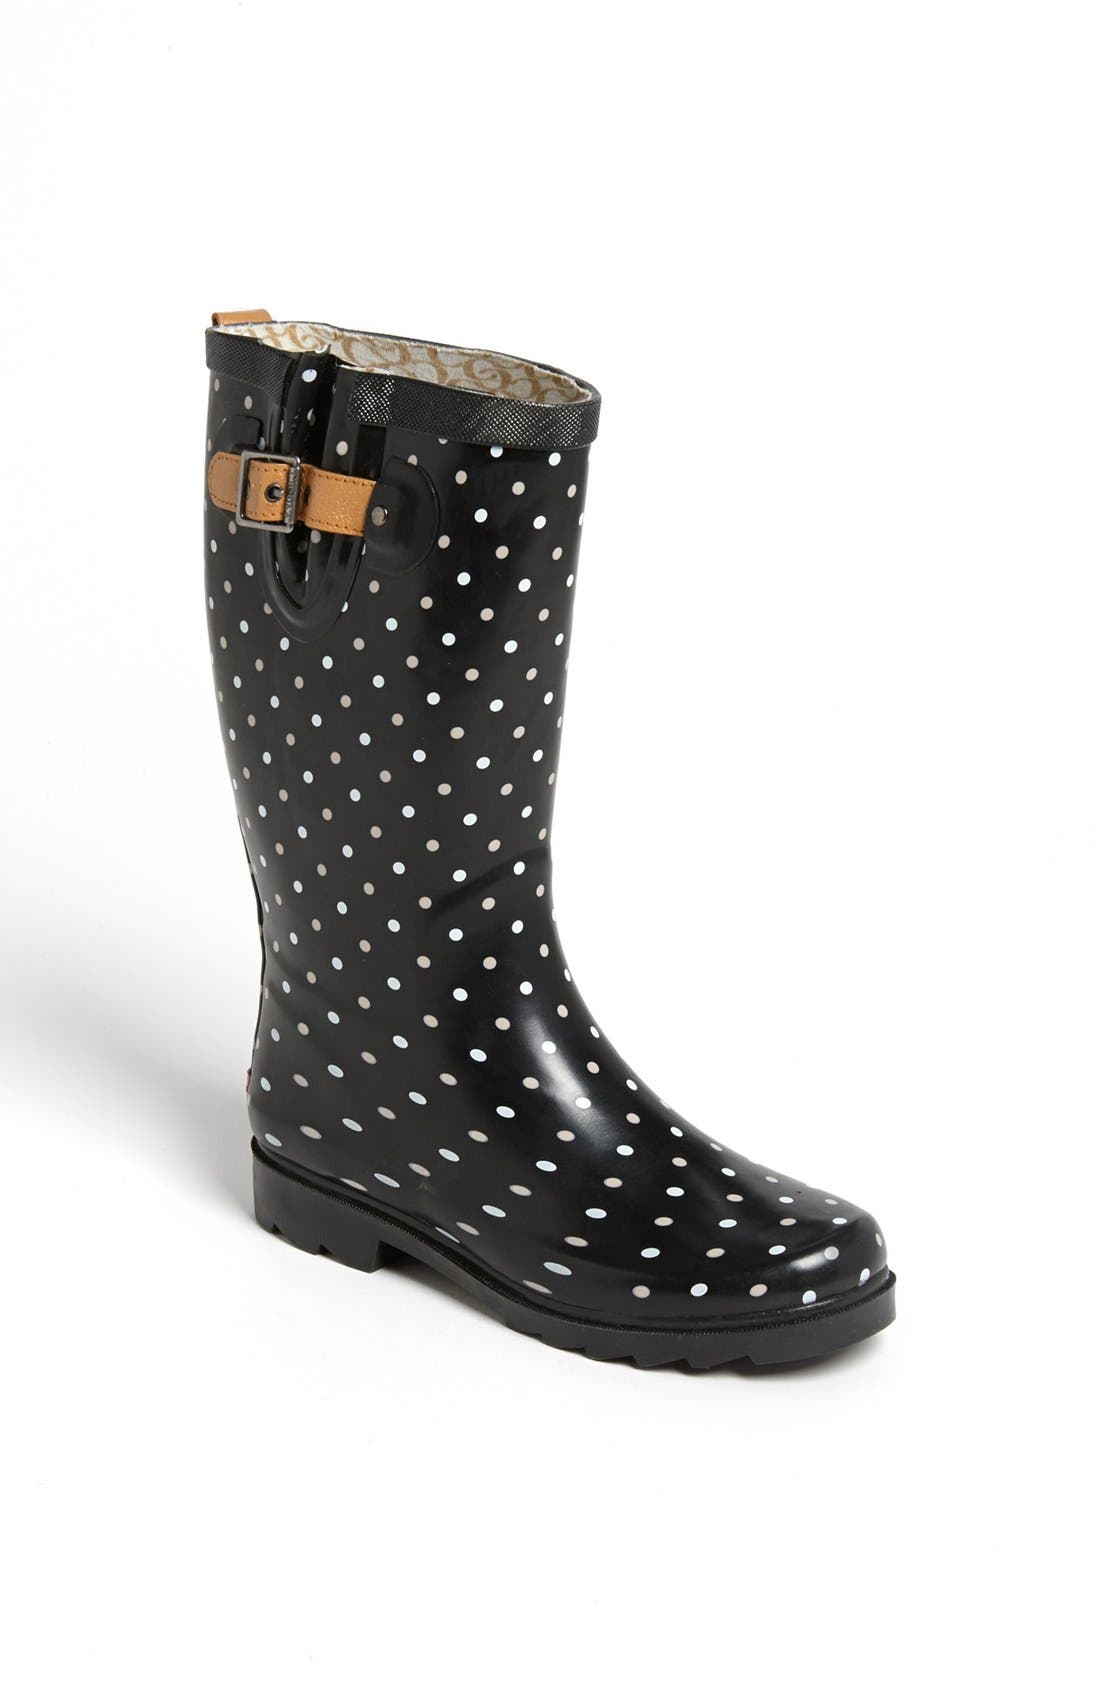 Main Image - Chooka 'Classical Dot' Rain Boot (Women)